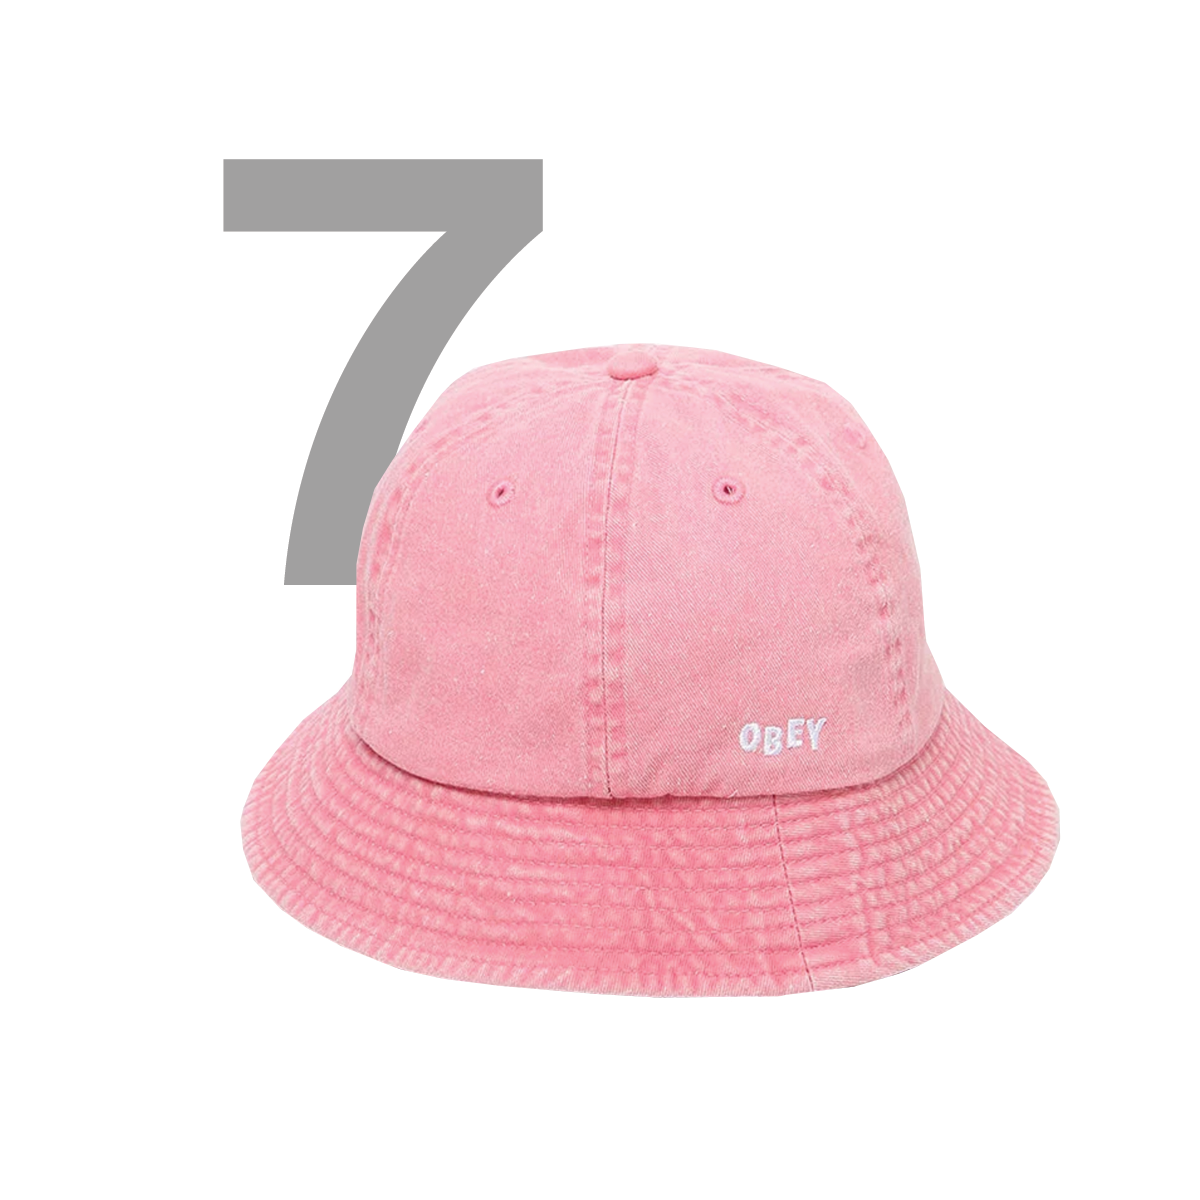 OBEY Decades Bucket Hat, available at PacSun